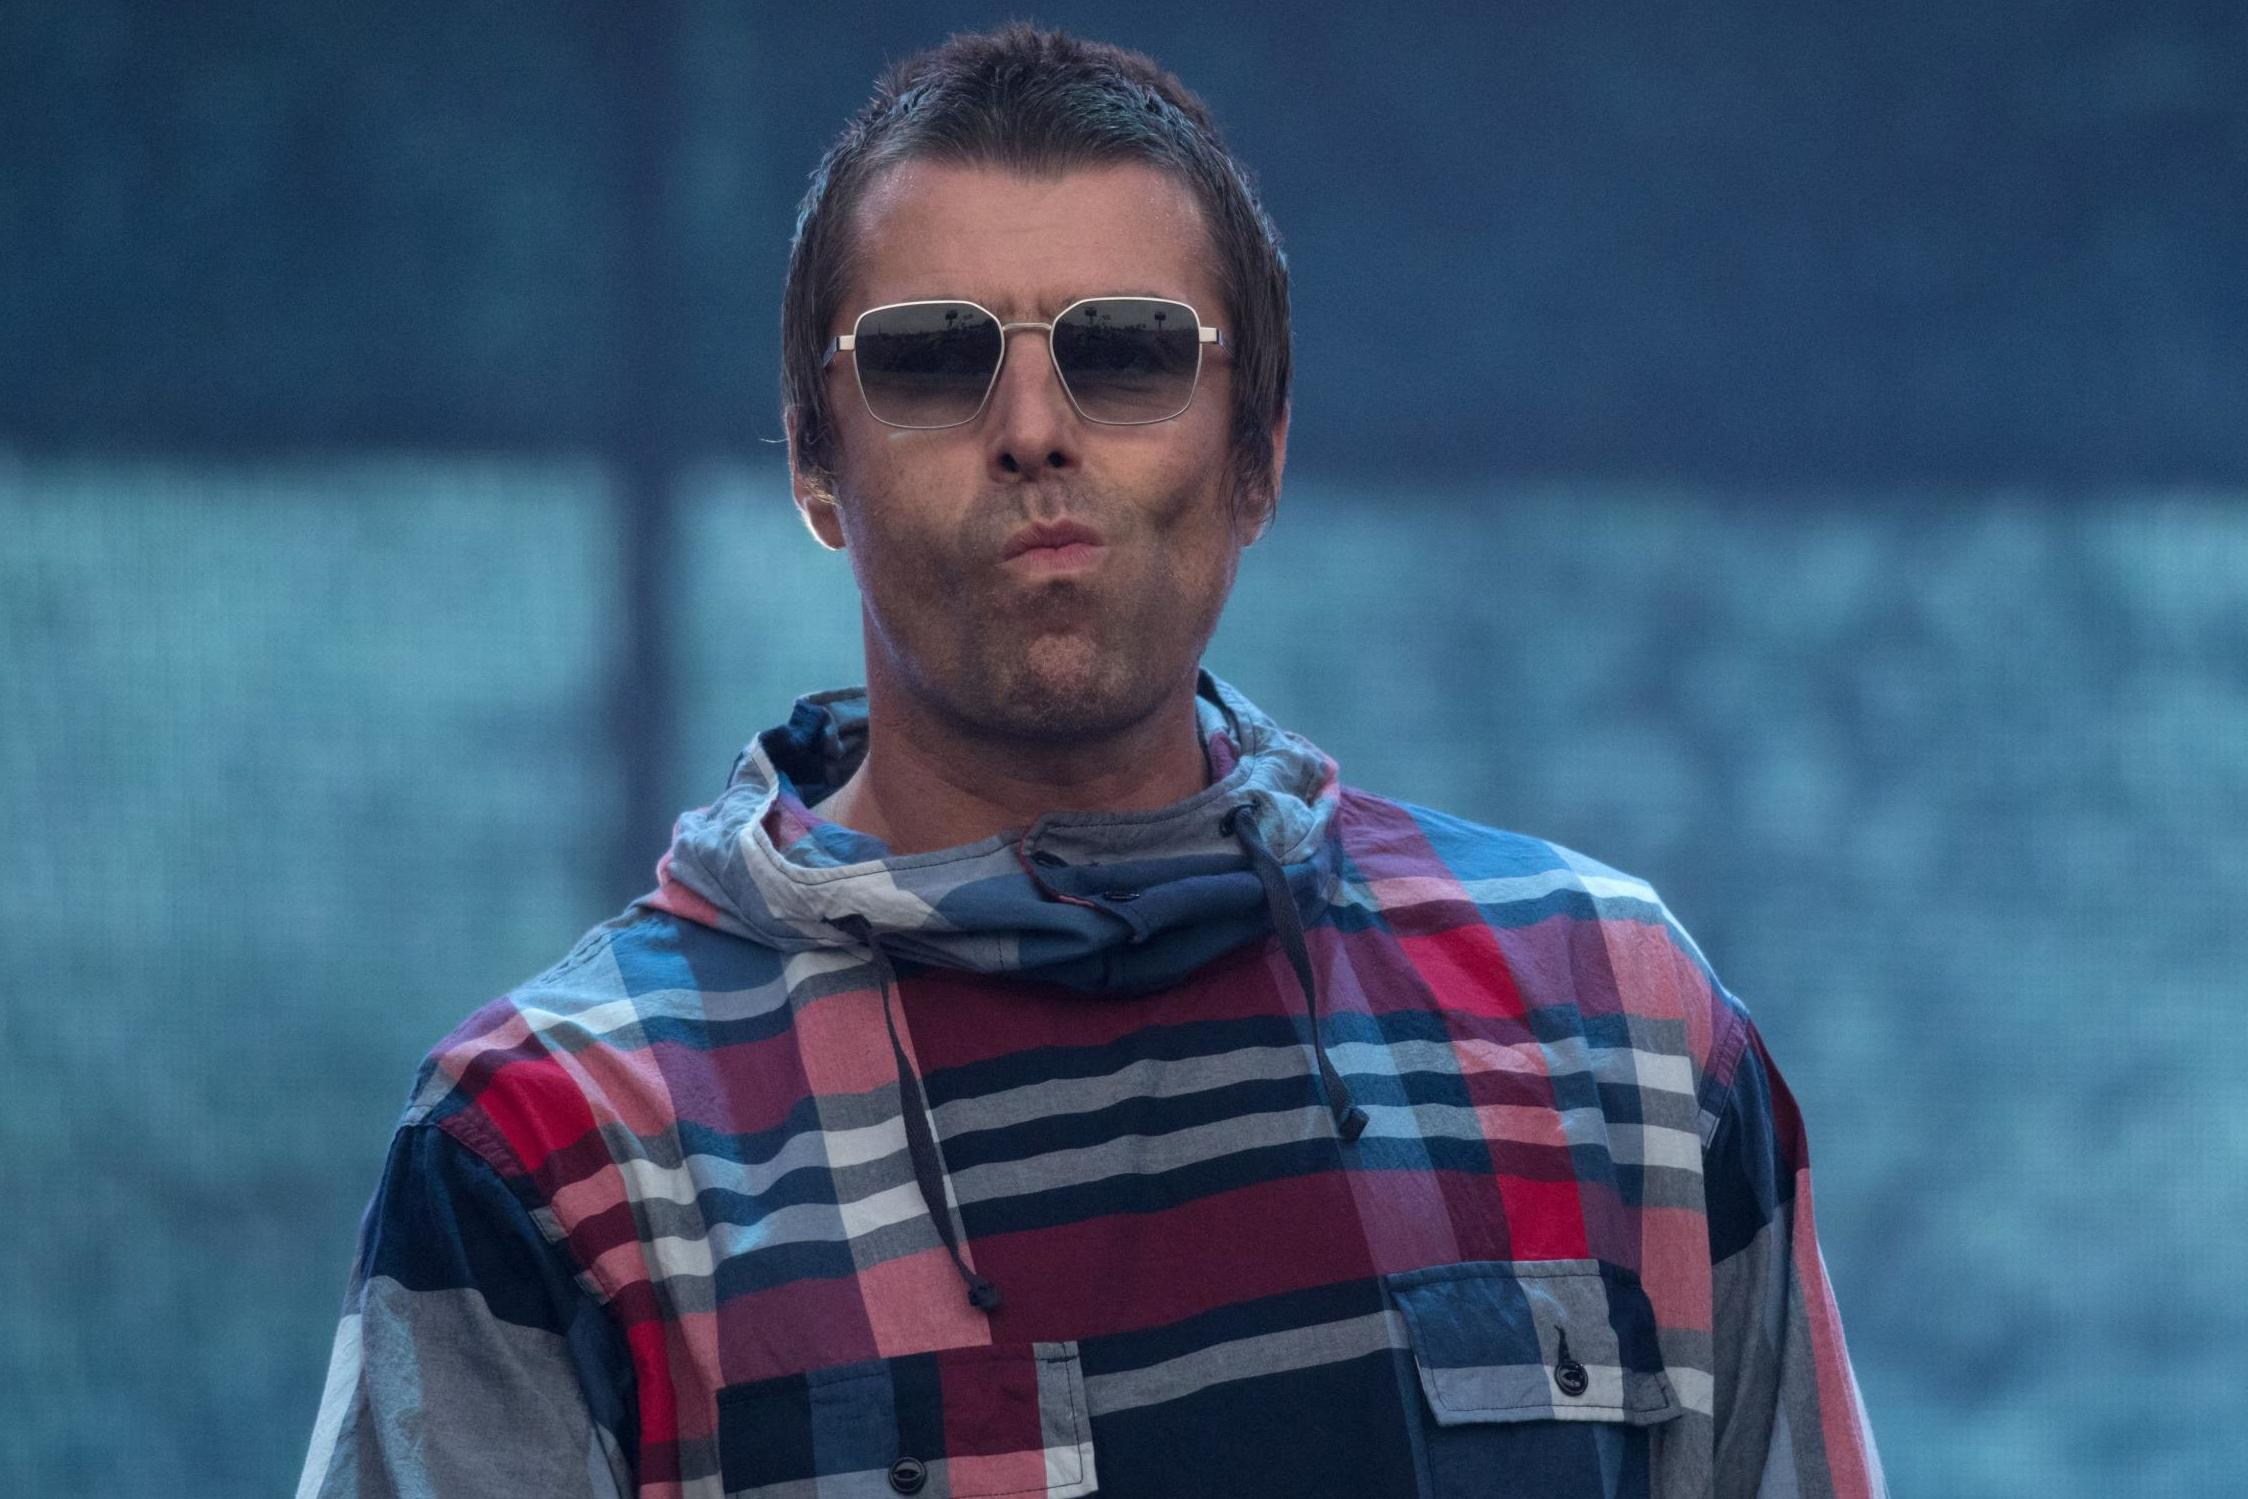 Liam Gallagher changes song lyrics on stage in apparent dig